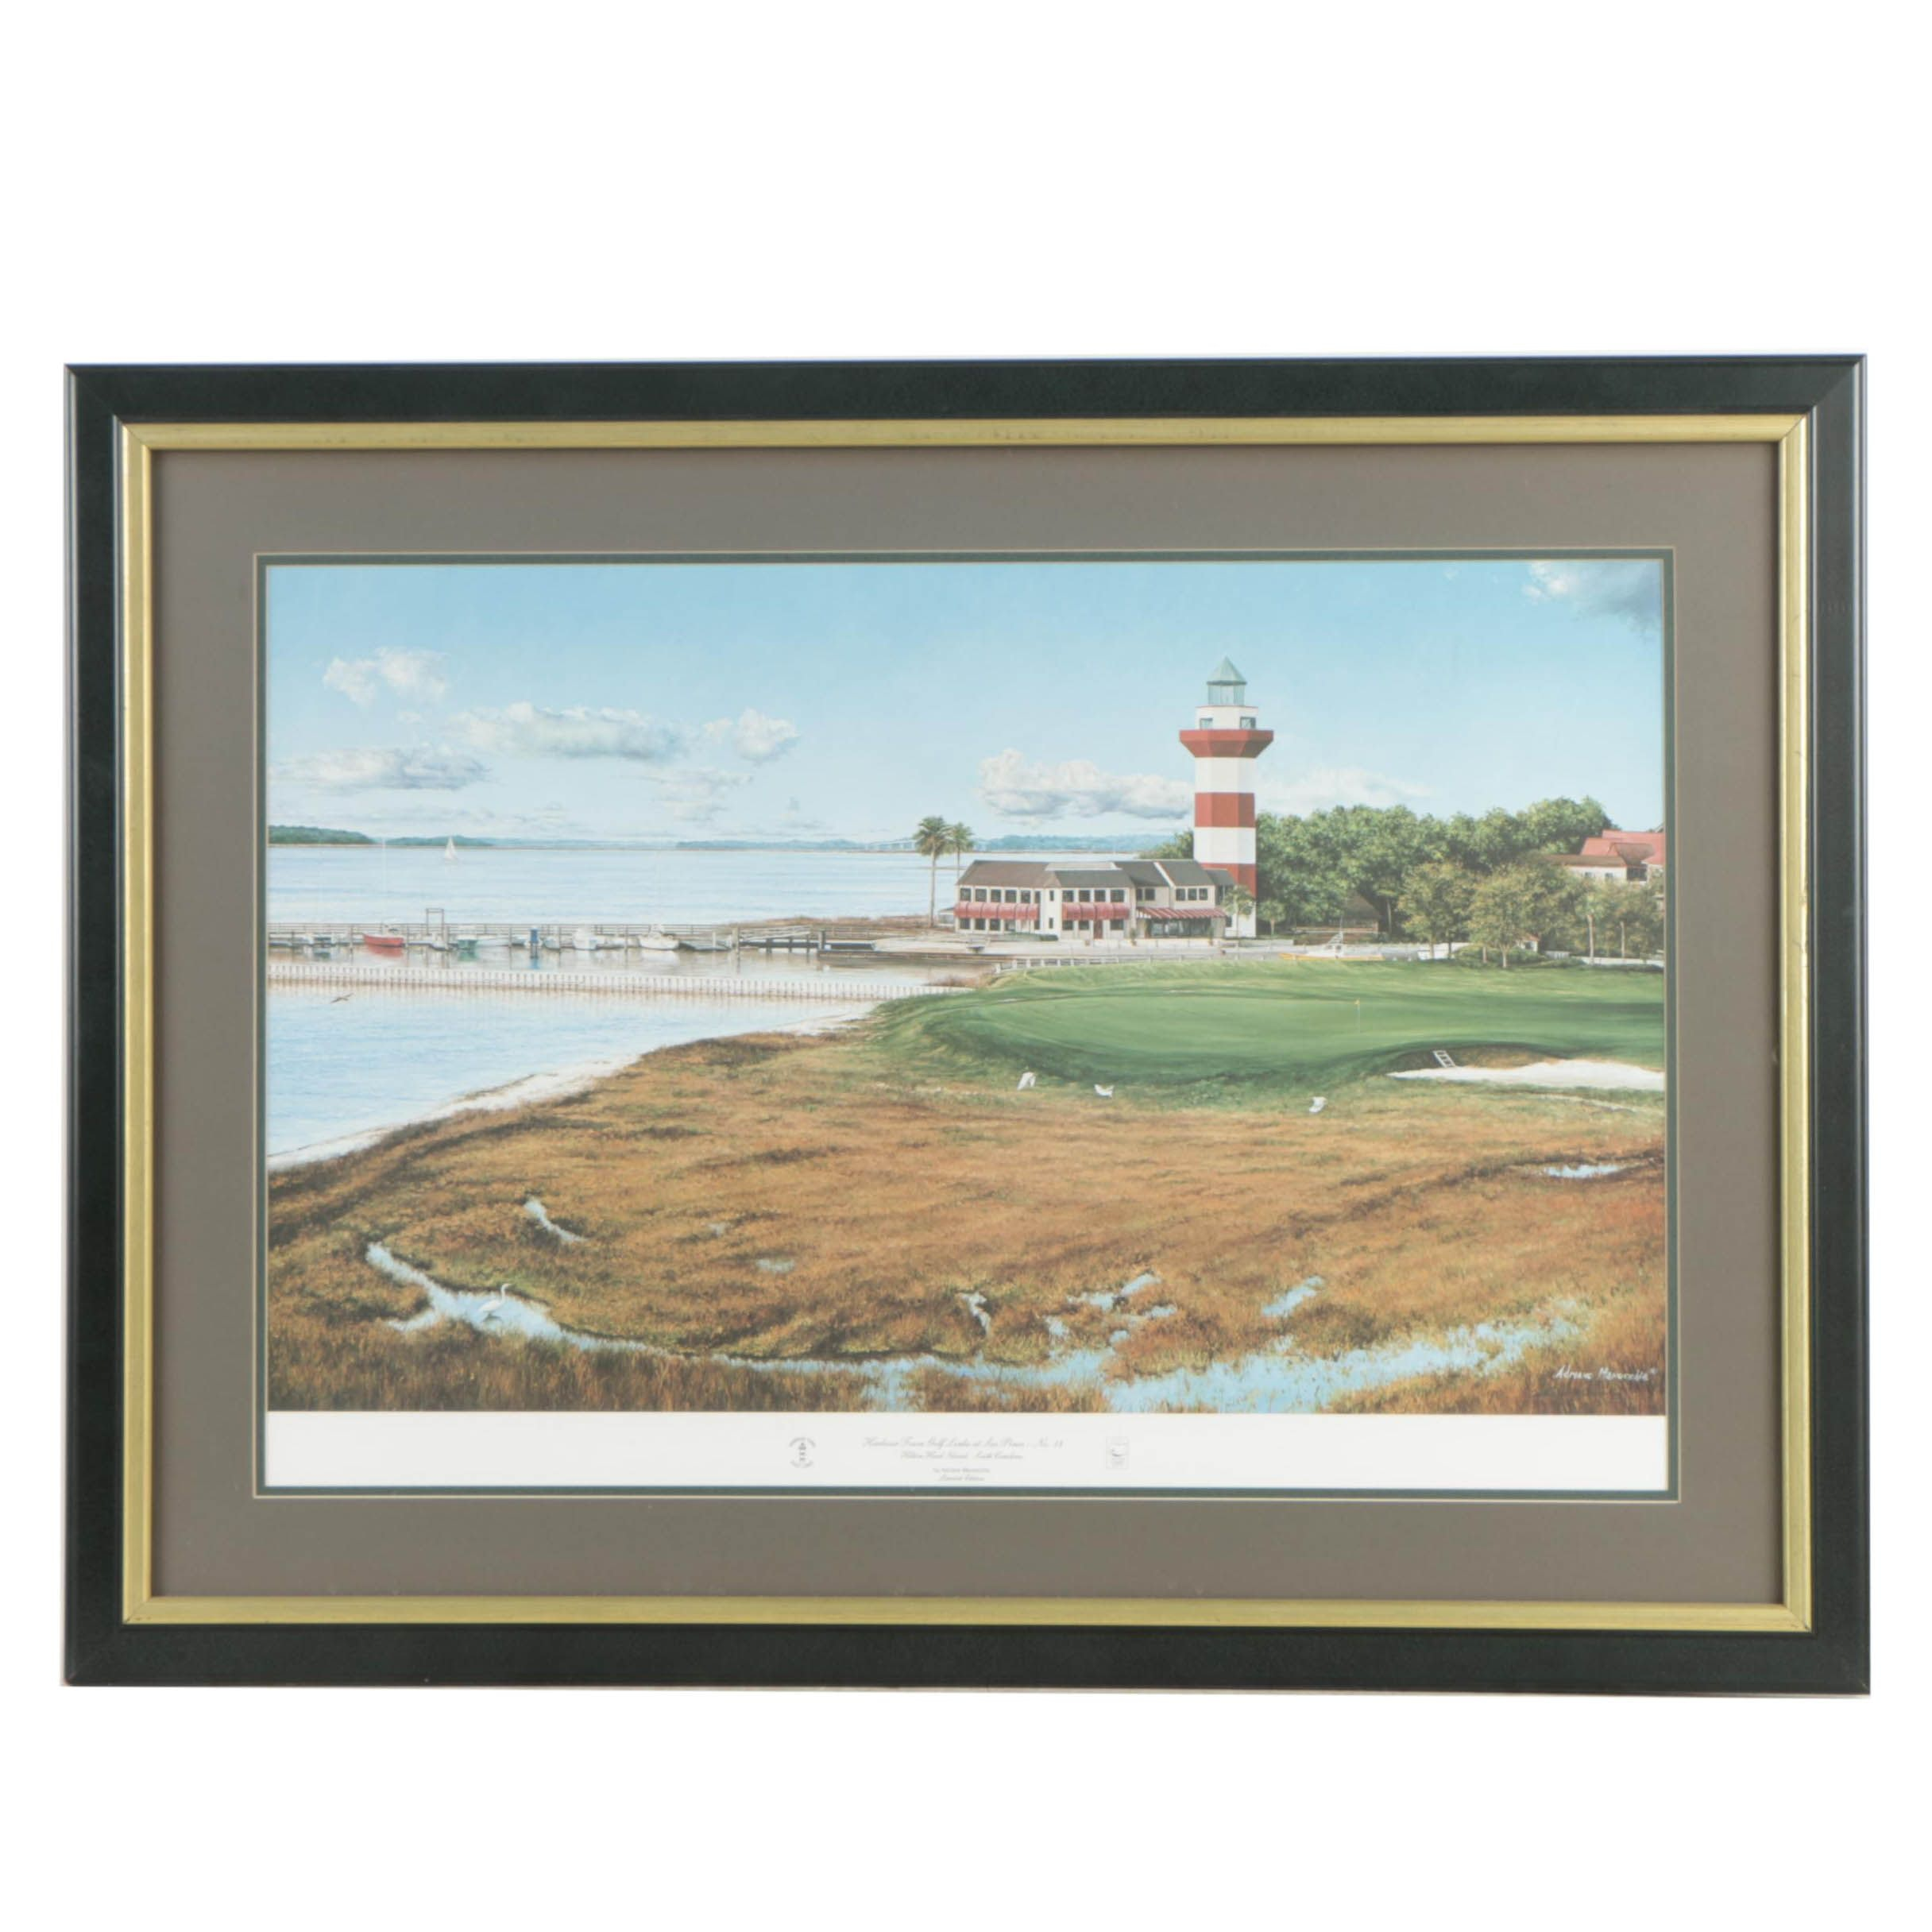 Adriano Manocchia Limited Edition Offset Lithograph of Golf Course